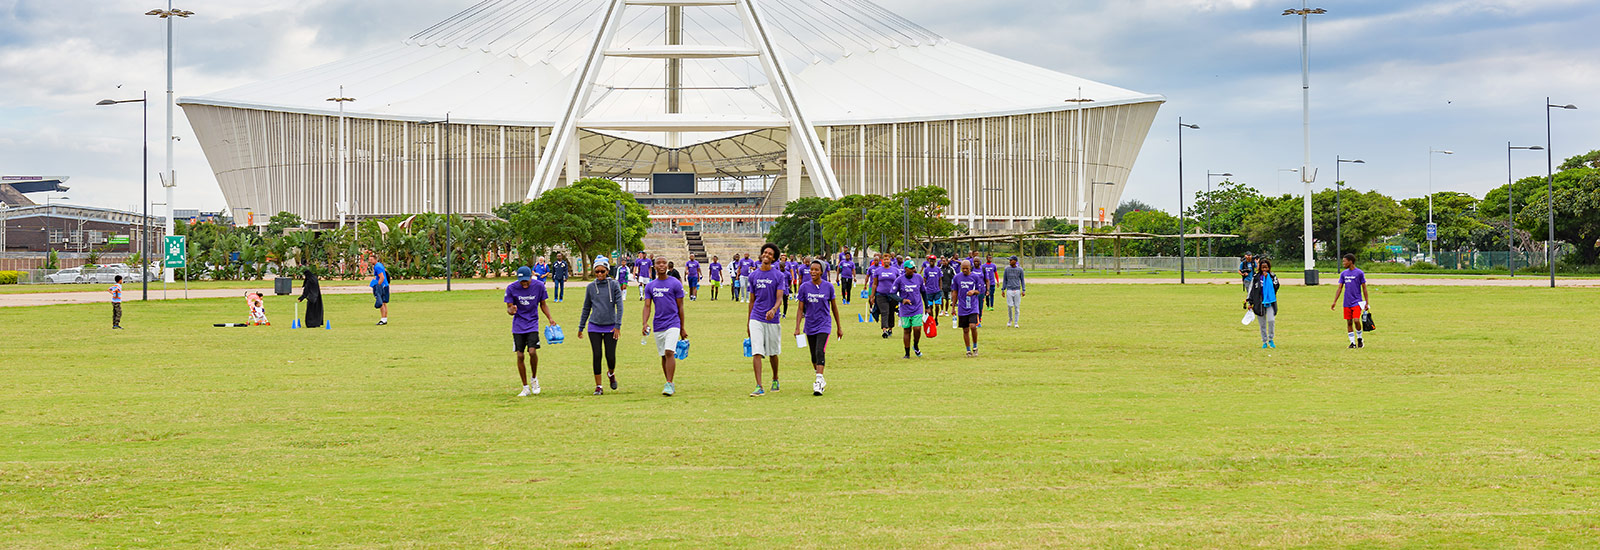 Premier Skills training program at Moses Mabhida Stadium in Durban